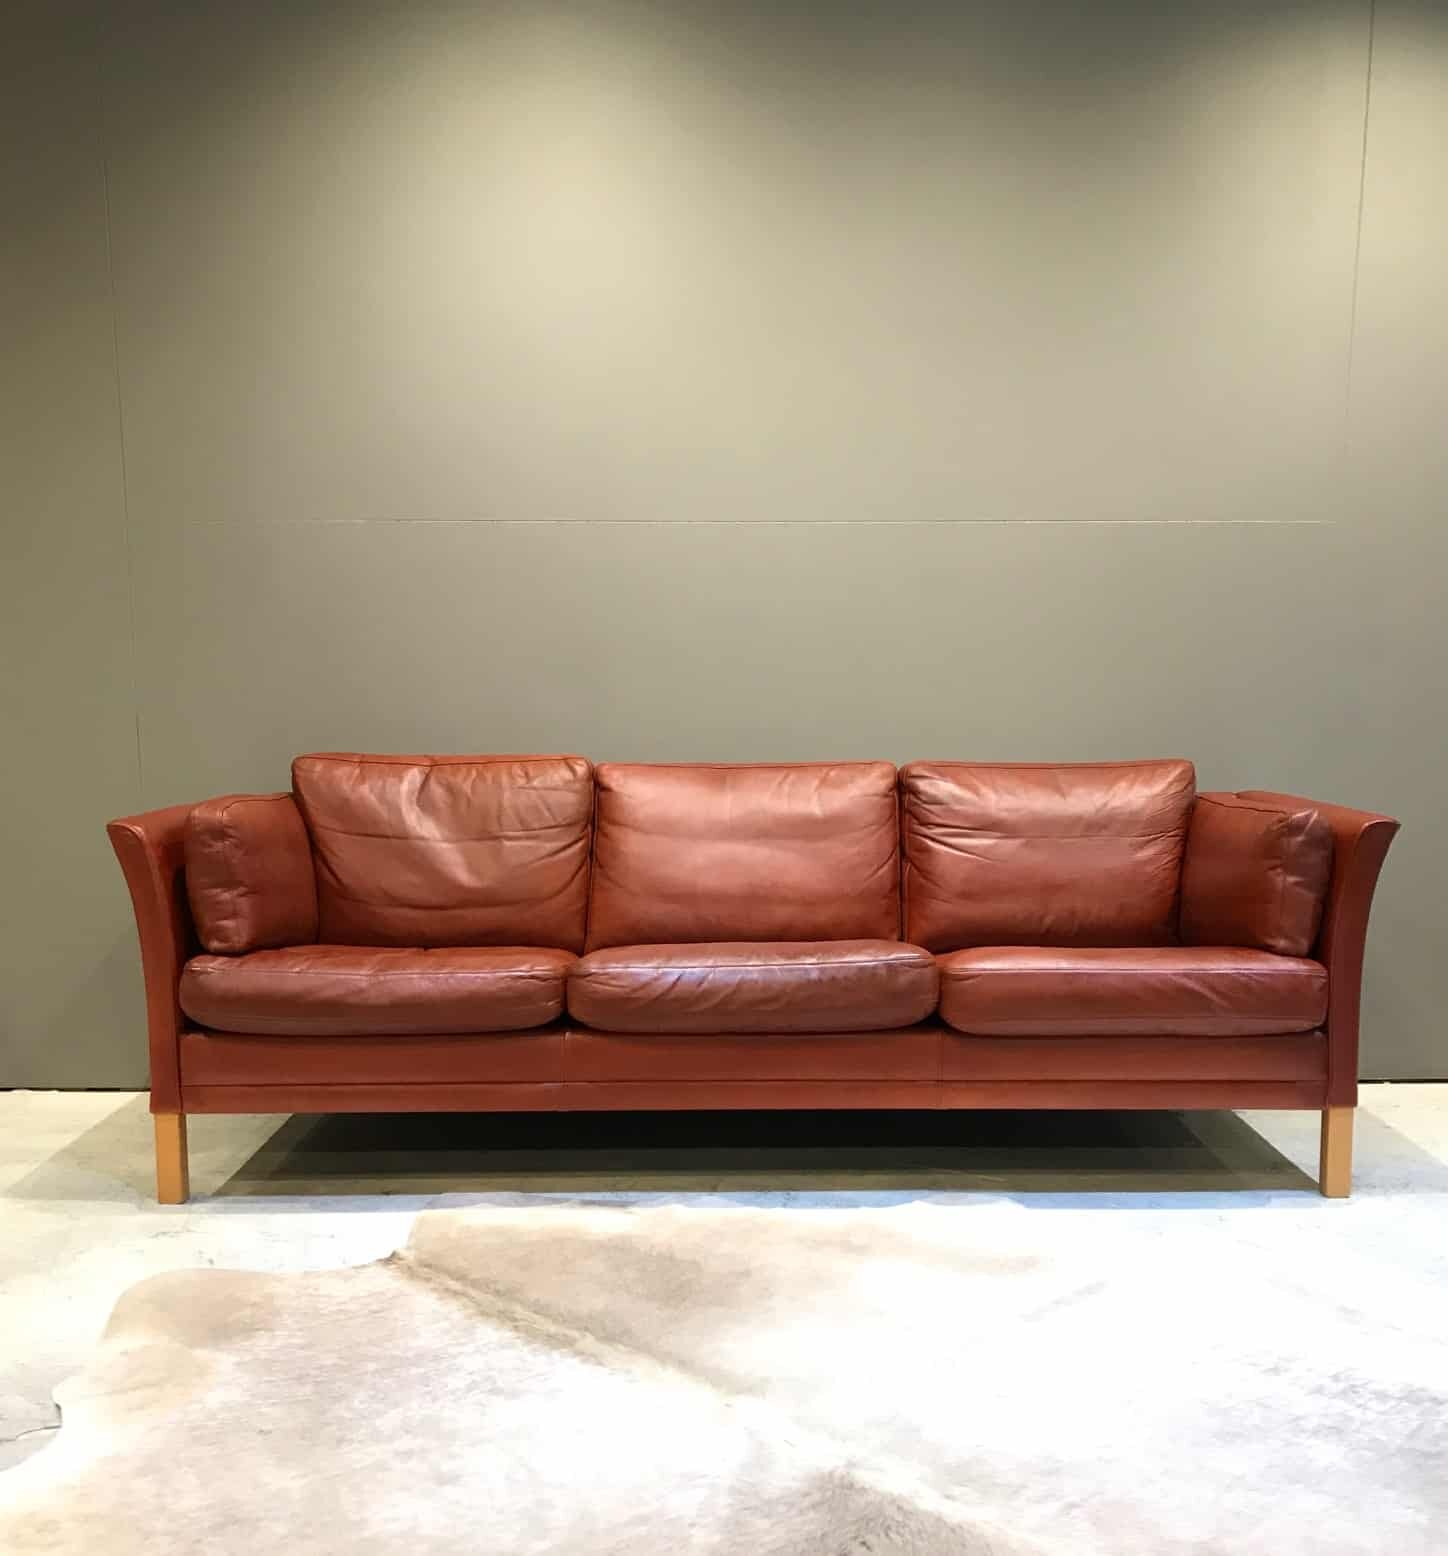 Danish Sofa Mid Century Furniture Melbourne